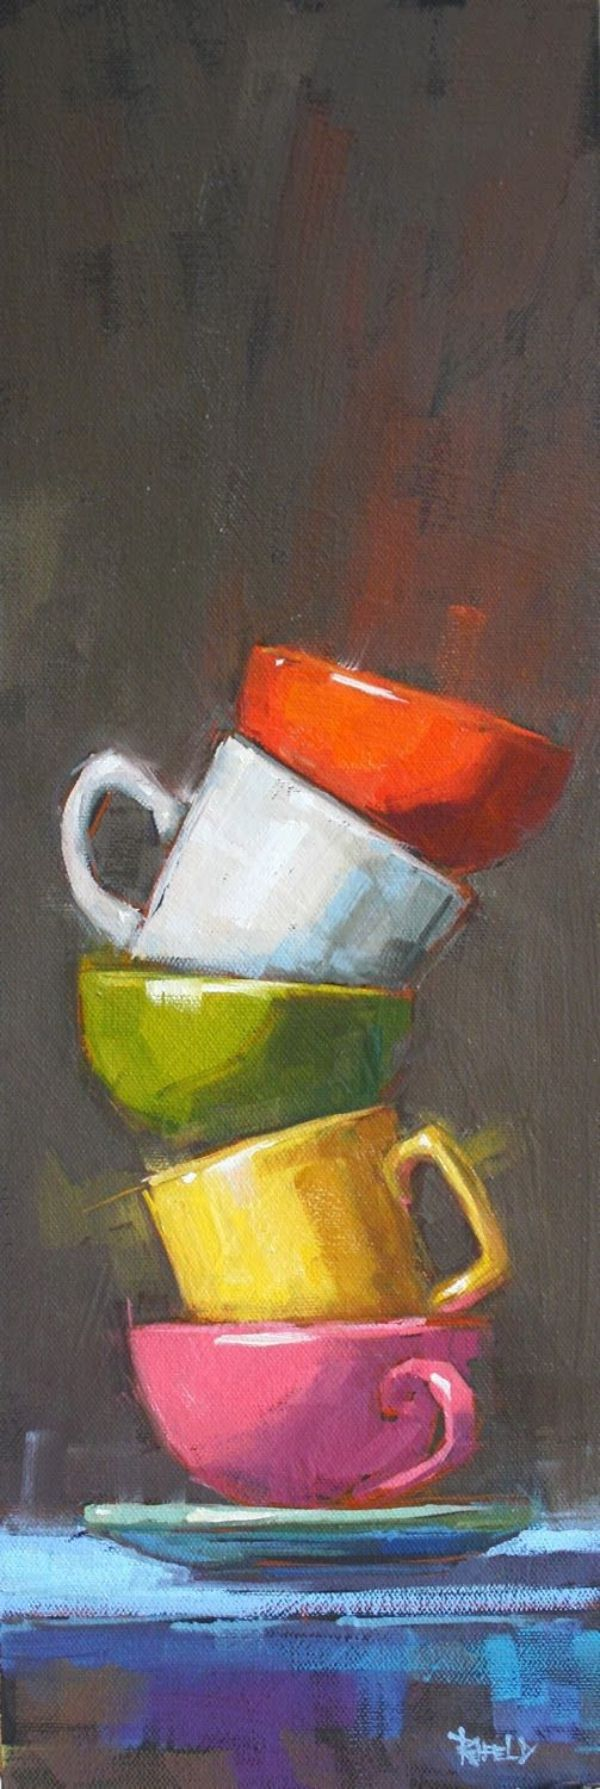 40 Still Life Drawing And Painting Ideas For Beginners Paintings